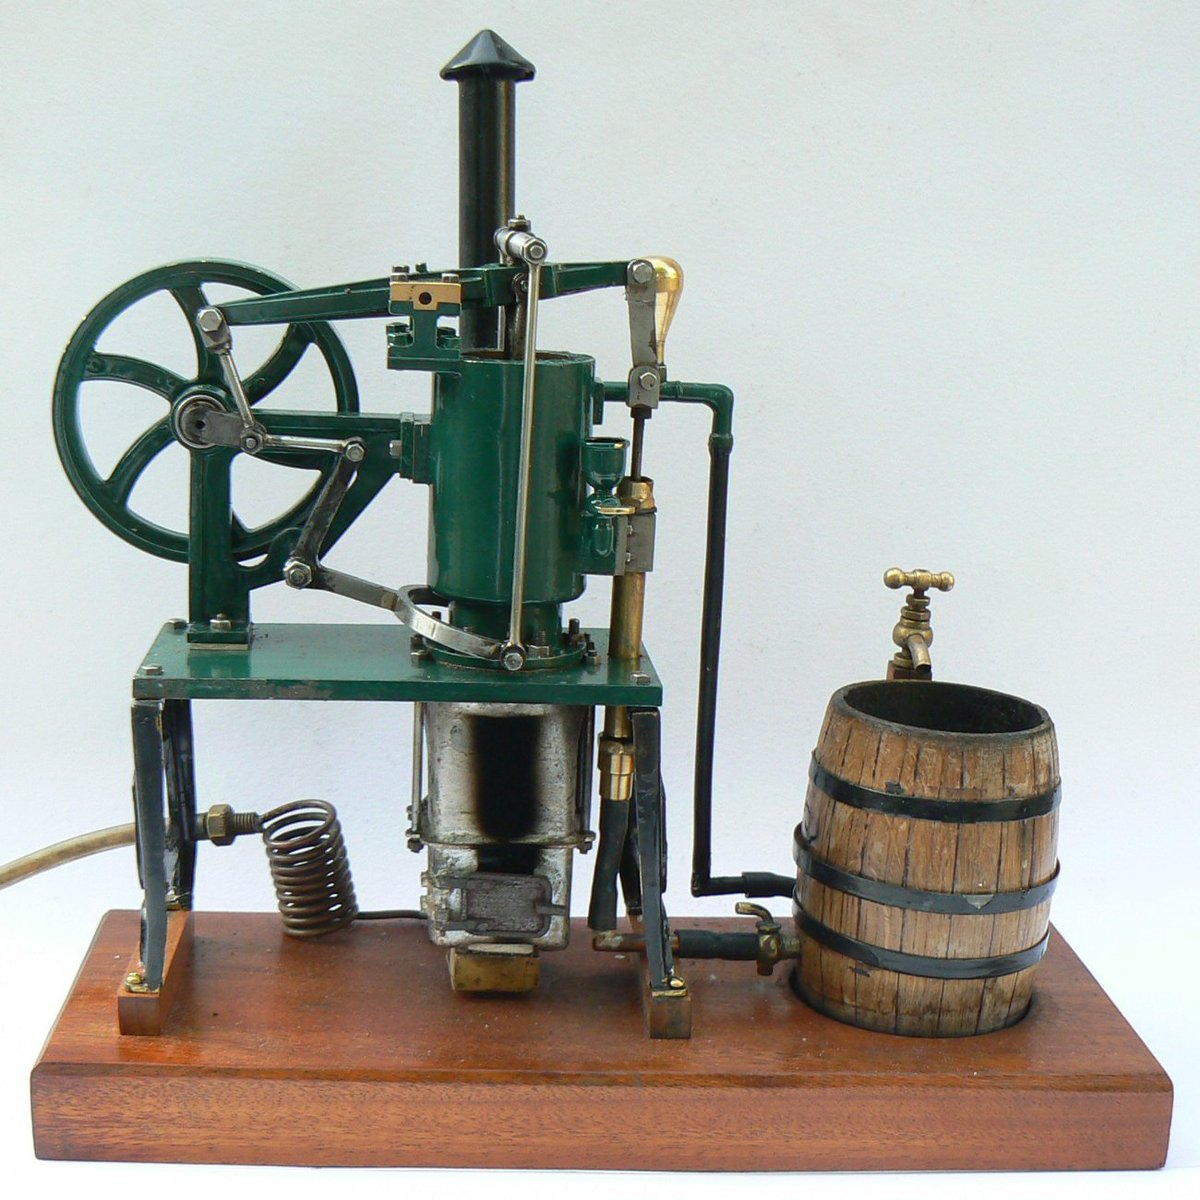 who invented the stirling engine